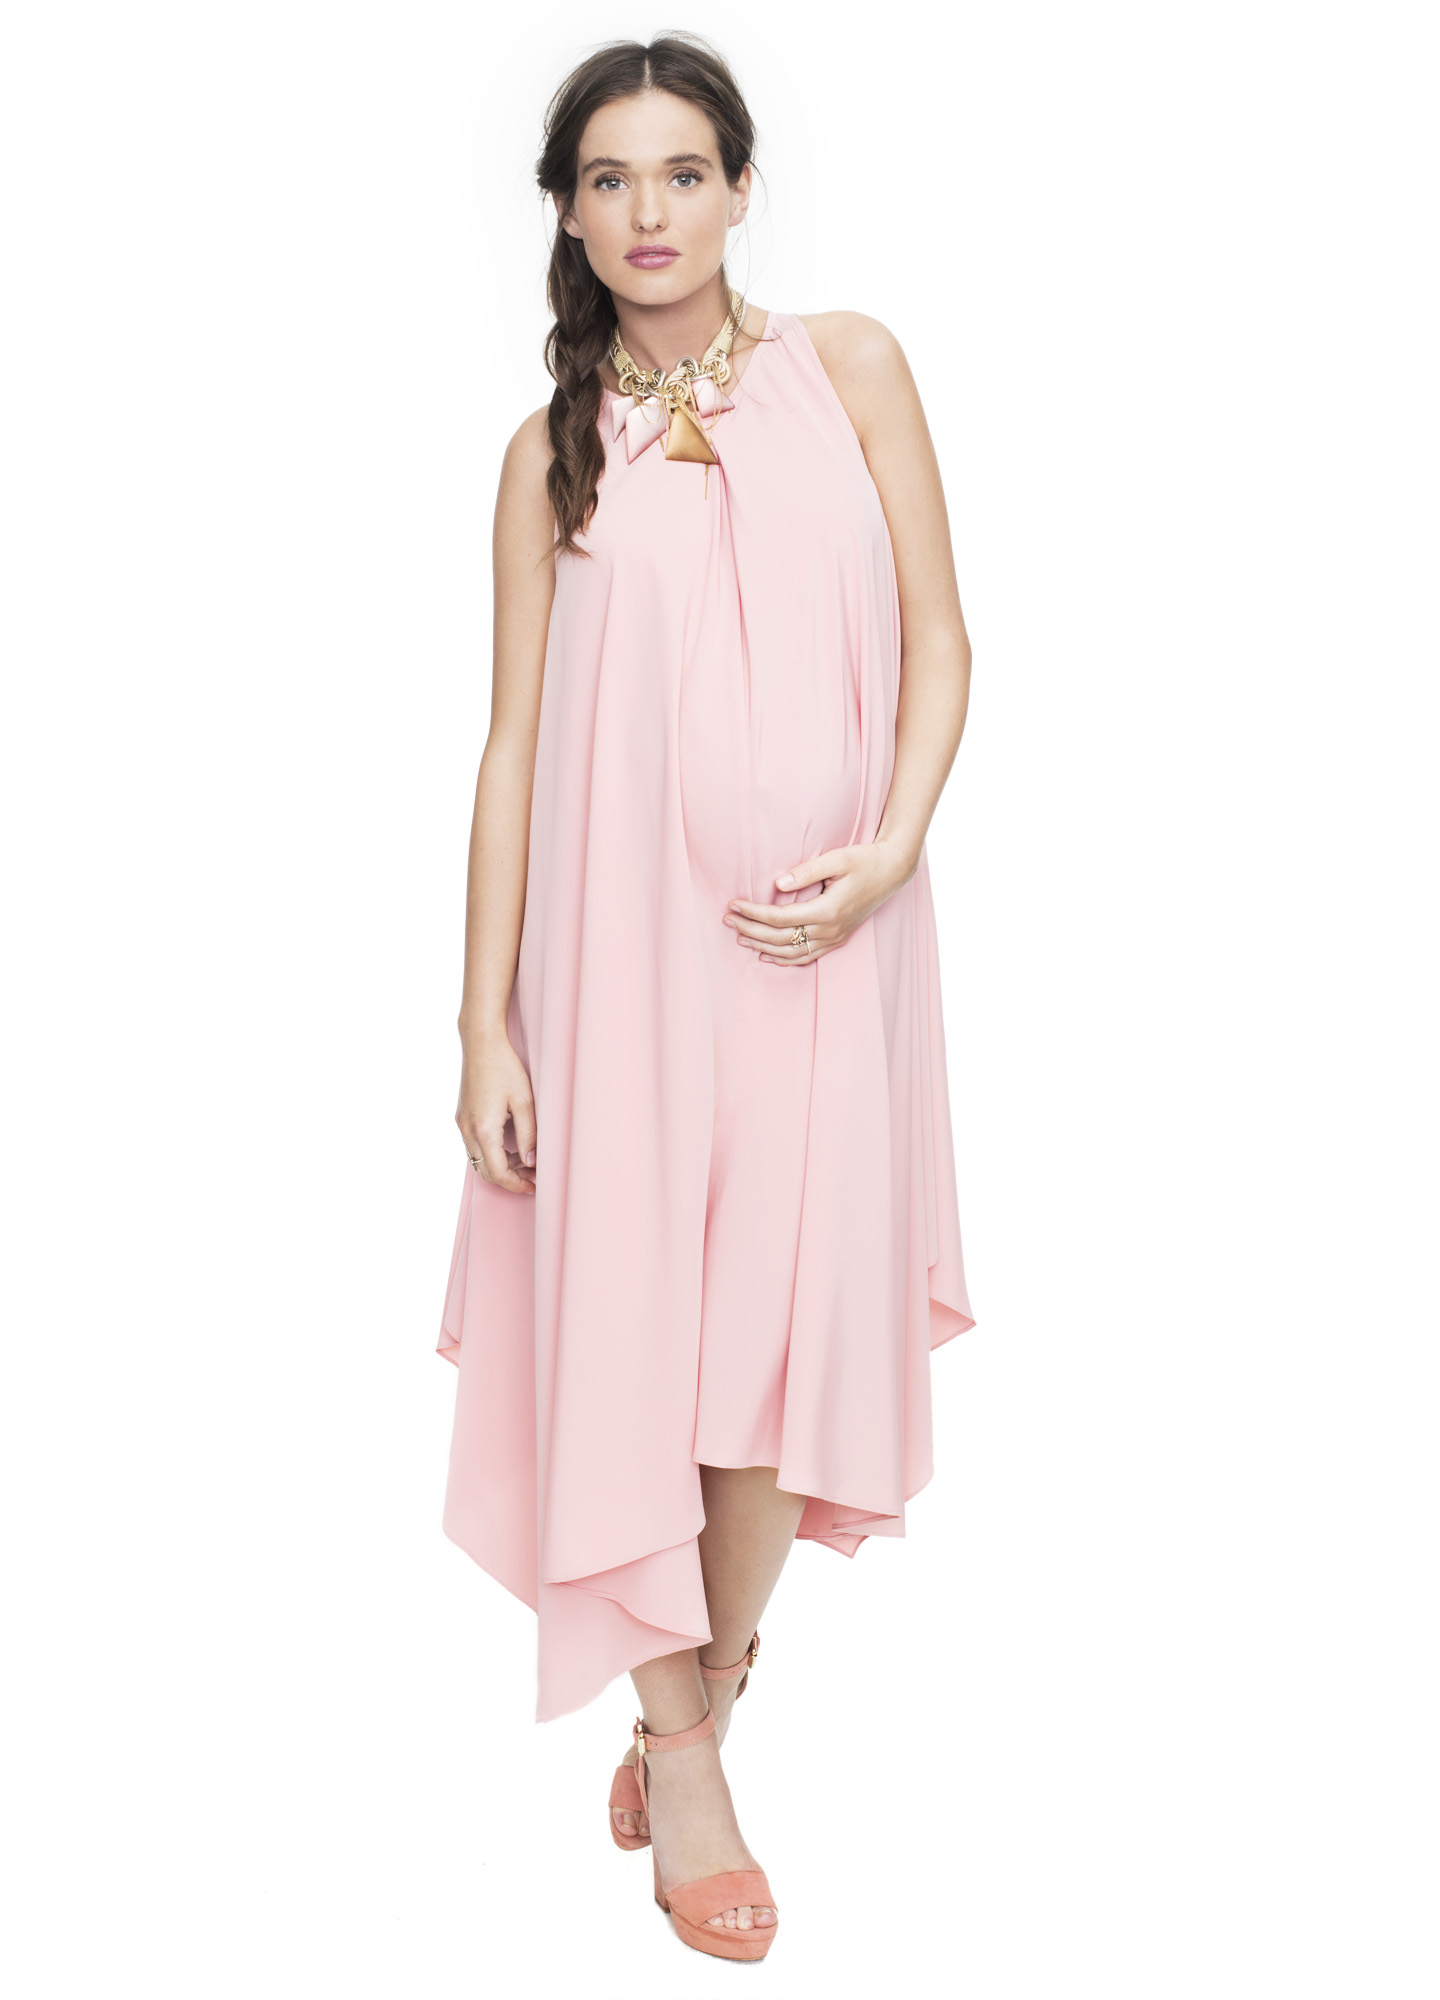 dinner party dress 11 fun and flirty baby shower dresses for moms